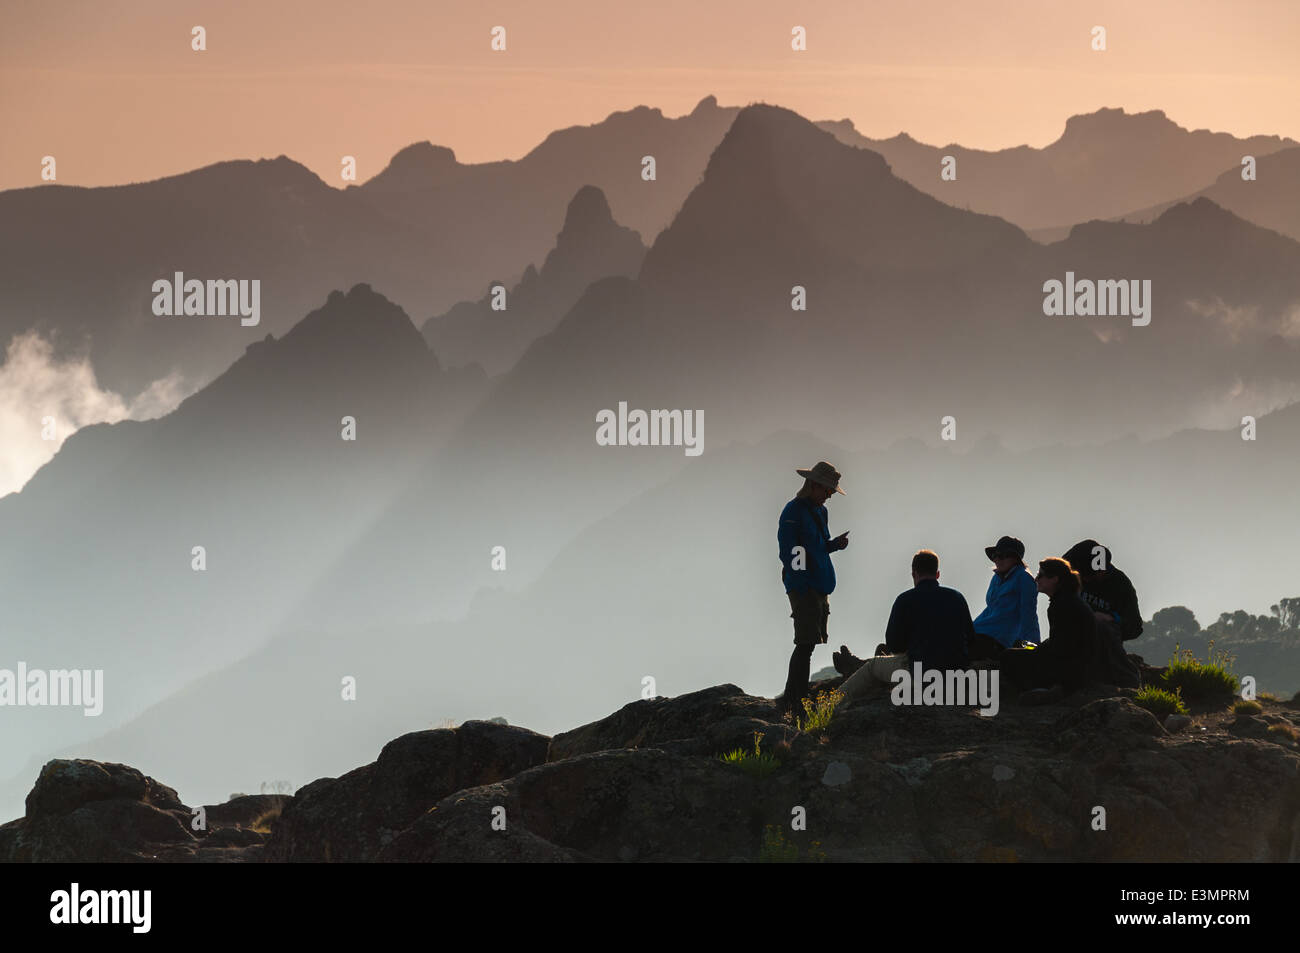 A group of trekkers relaxing on Shira Plateau, Kilimanjaro at sunset - Stock Image